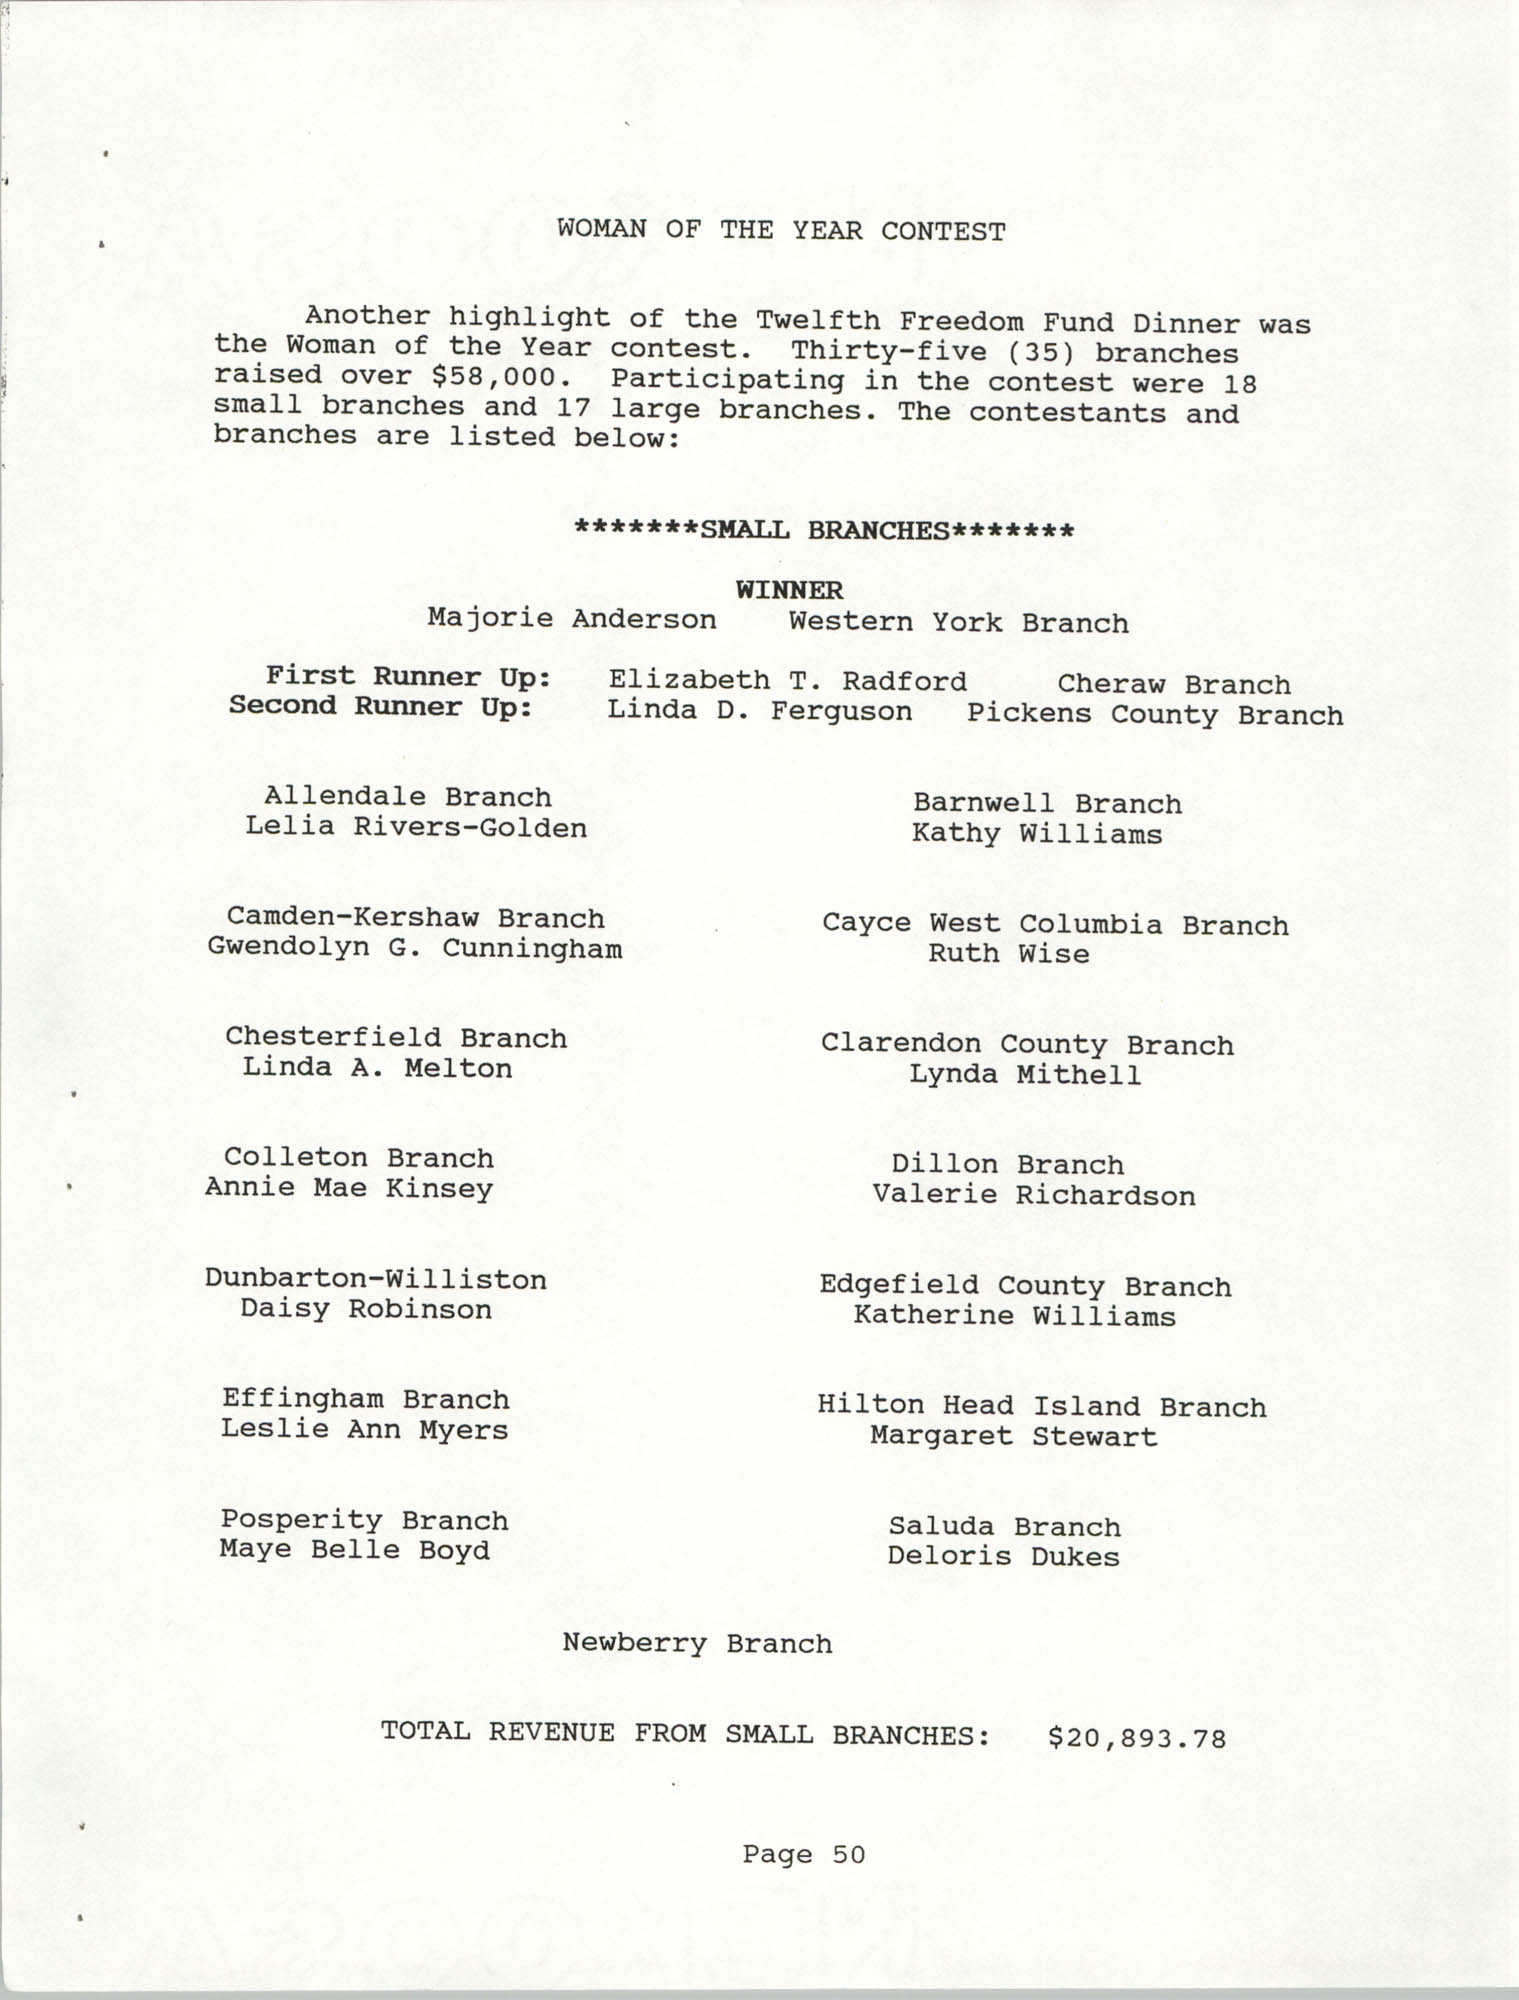 South Carolina Conference of Branches of the NAACP, 1990 Annual Report, Part Two, Page 50